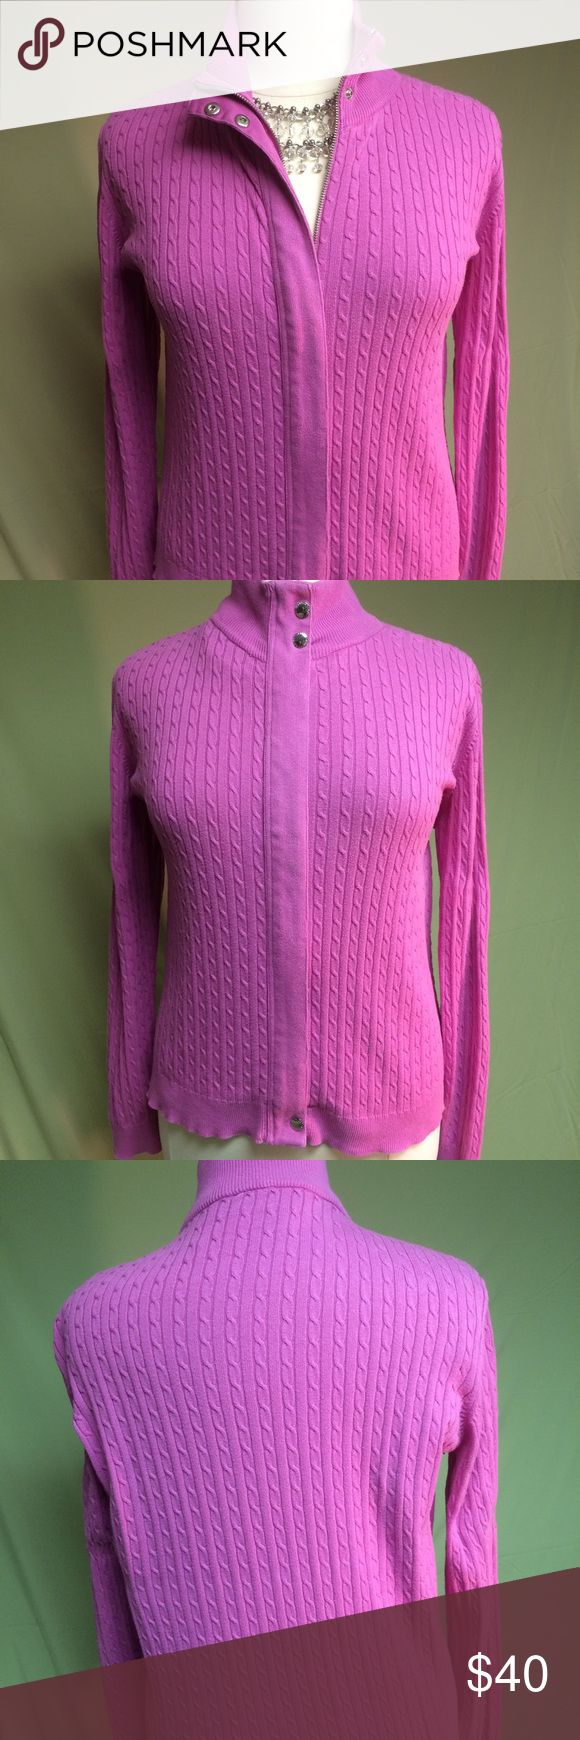 Lauren by Ralph Lauren Pink Zip Up Sweater Gorgeous Pink Zip Up Cable knit sweater features silver zipper from tip to bottom in EUC. Hidden zipper. Silver snaps at top and bottom.  Machine wash cold & Lay flat to dry. This sweater is 100% Cotton. Lauren Ralph Lauren Sweaters Cowl & Turtlenecks